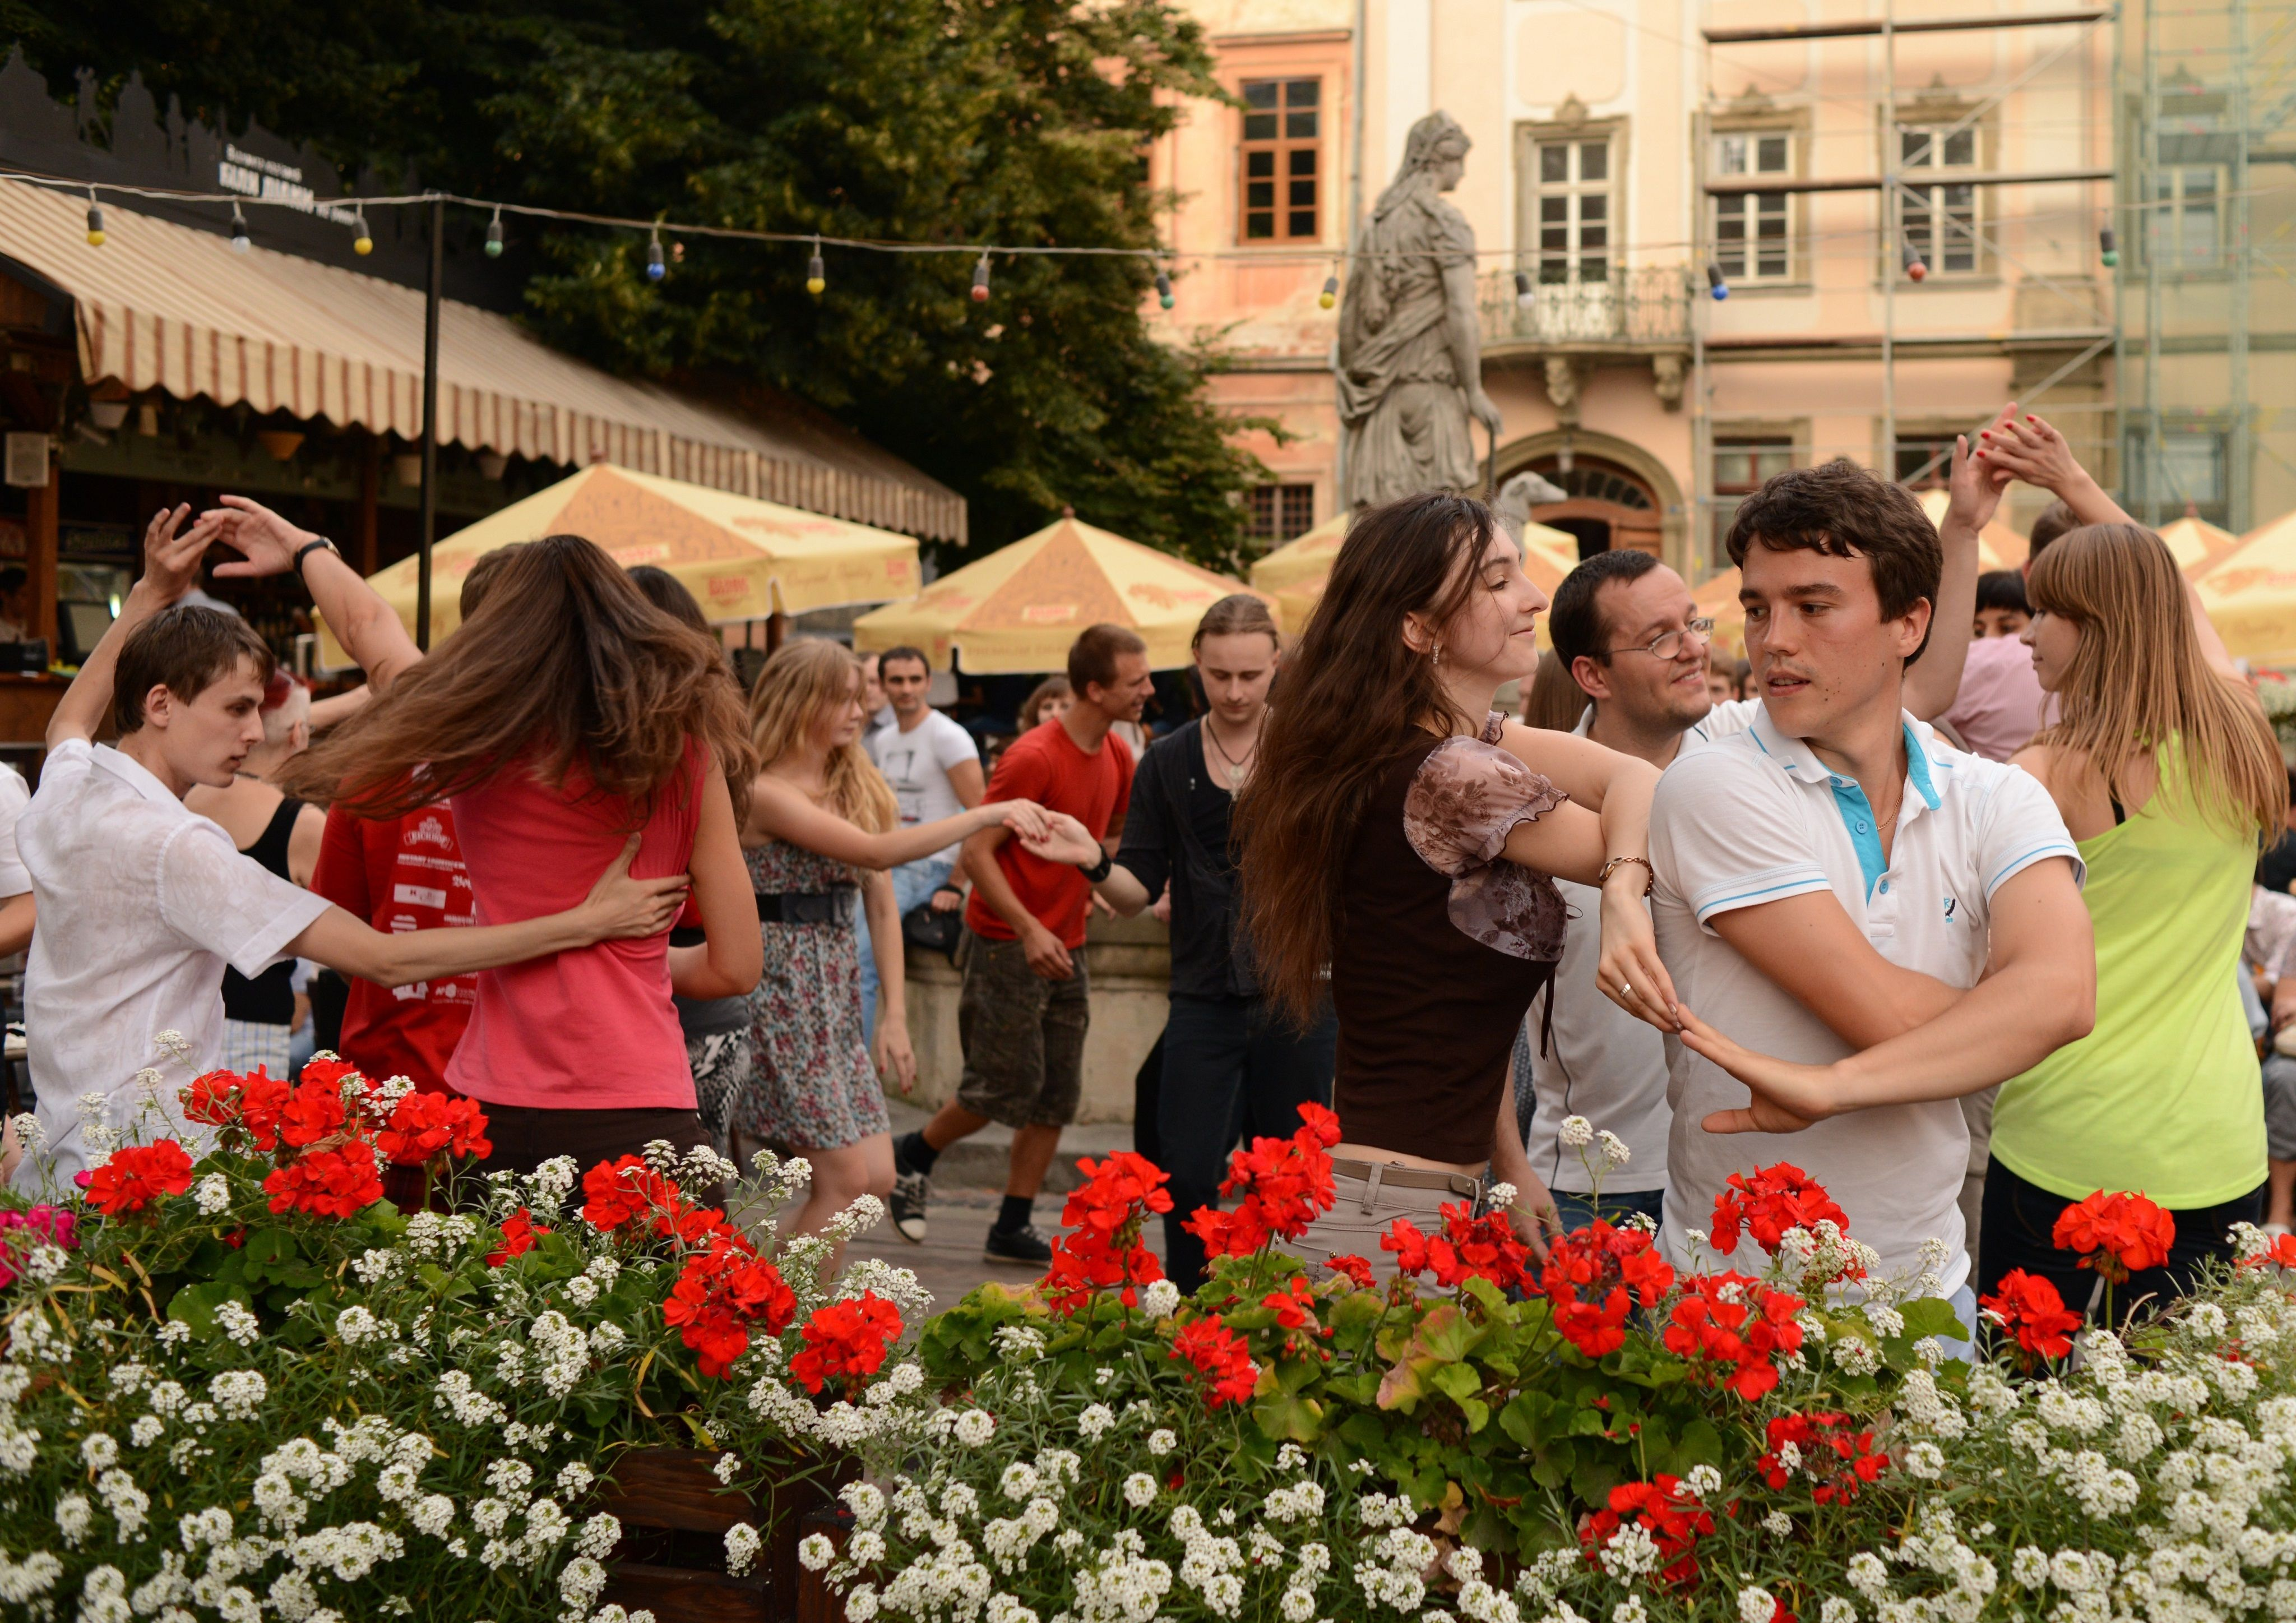 Lviv mtlg 2017 kongres europe events and meetings industry open publicscrutiny Gallery